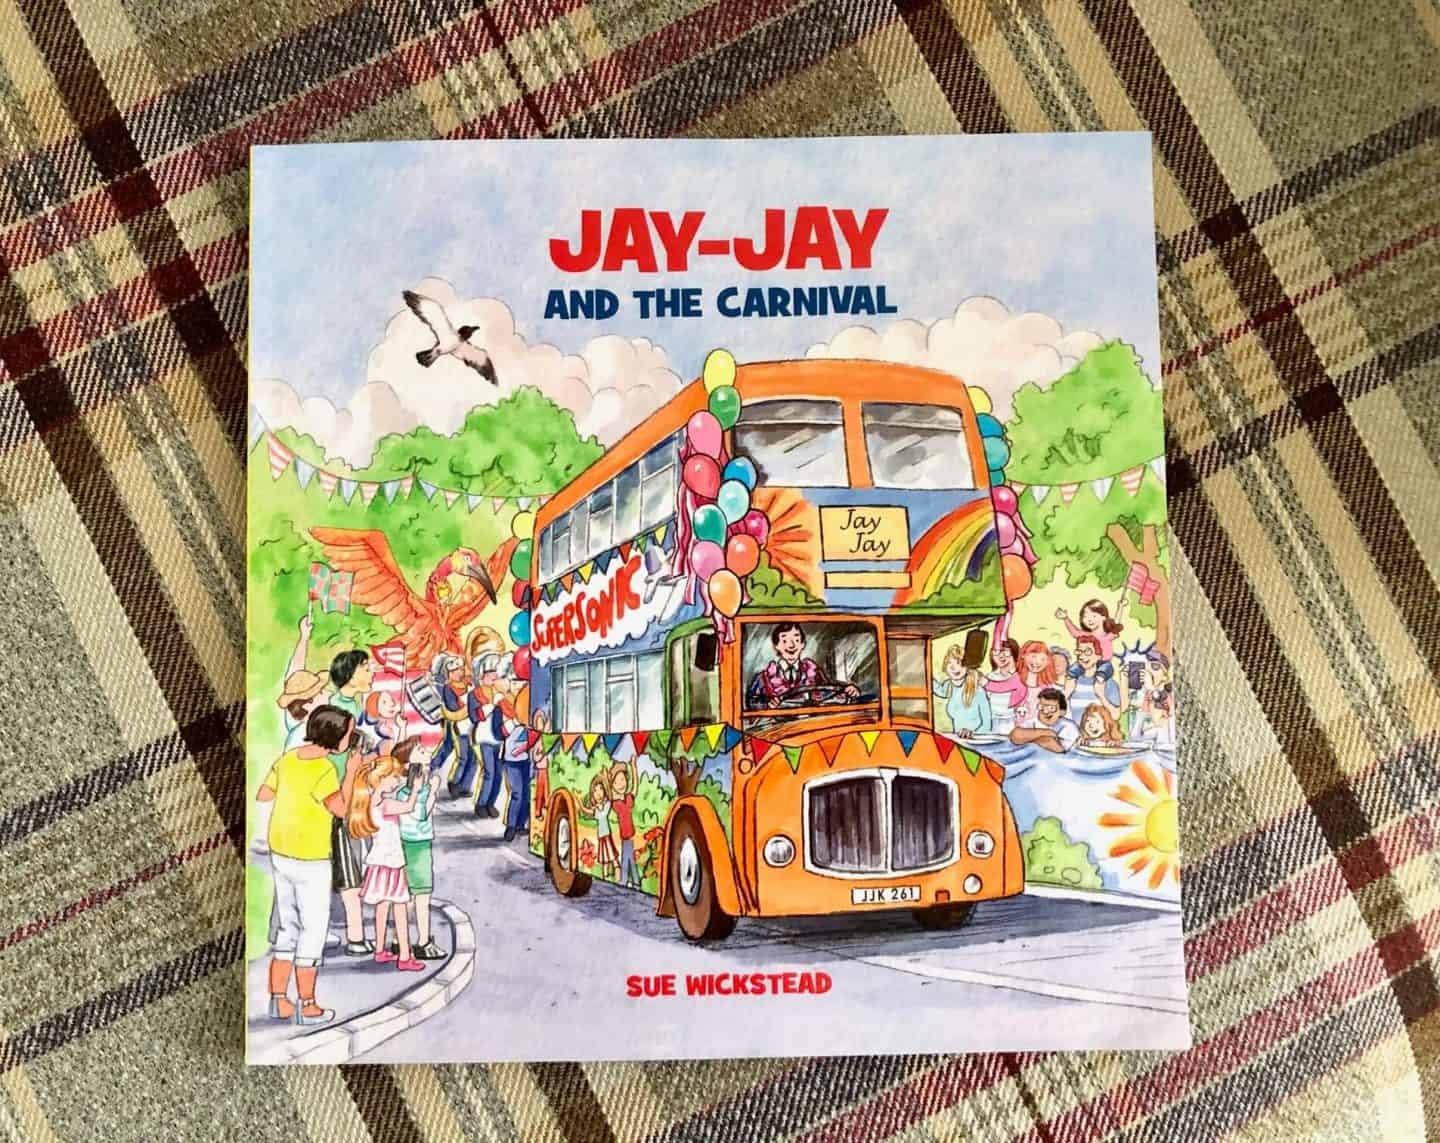 Jay-Jay and the Carnival by Sue Wickstead